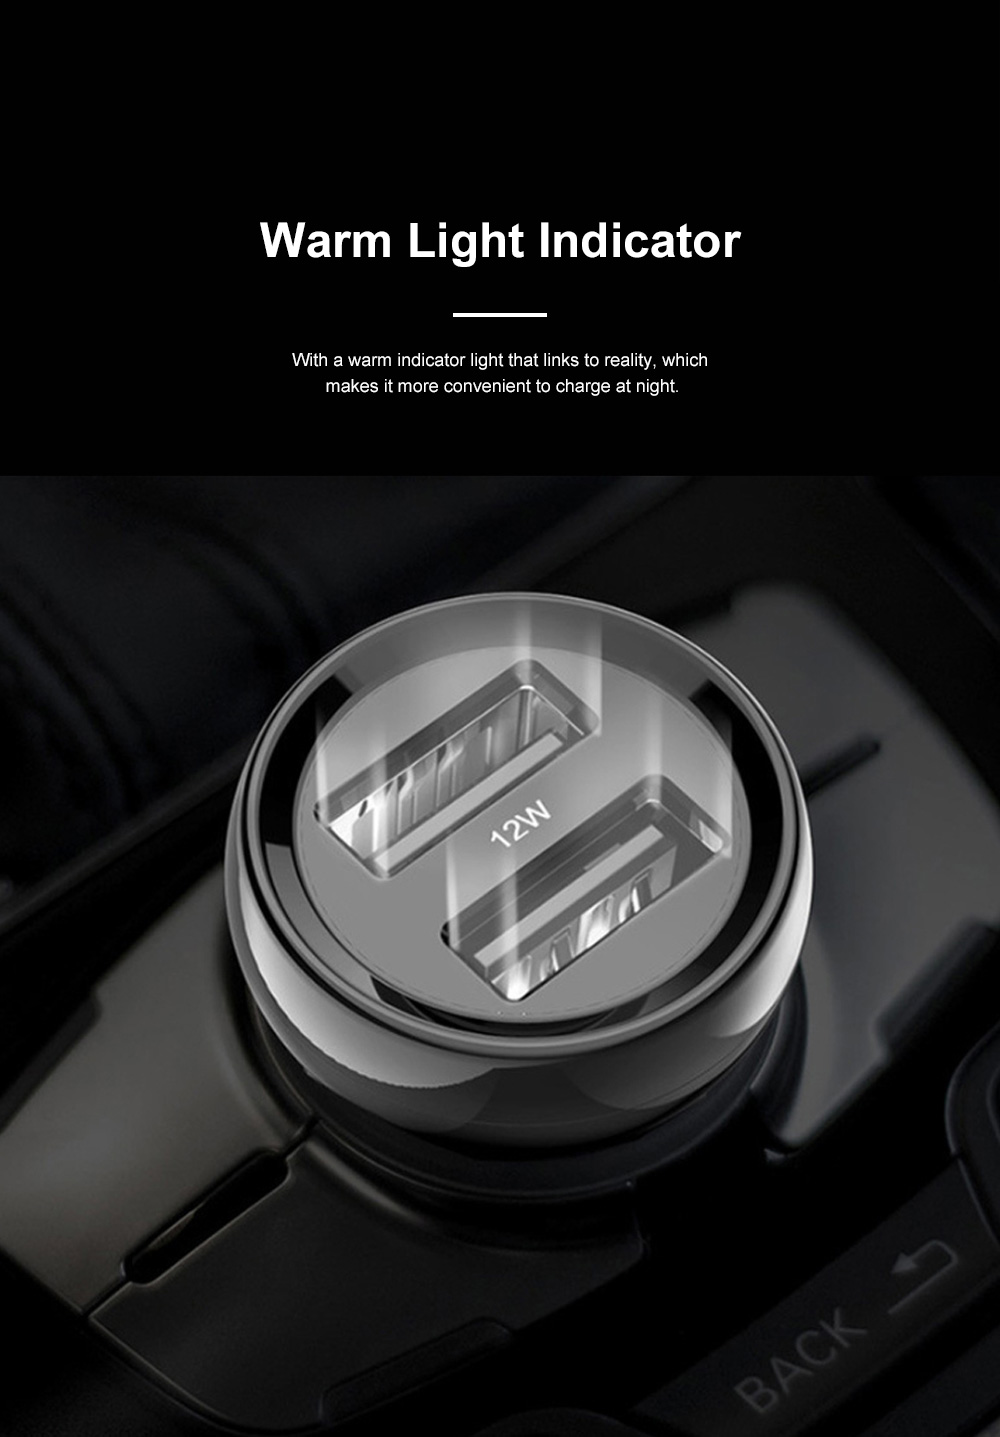 Pisen Dual USB Car Charger Mini Vehicle Power Charger with Warm Light Indicator and Bilateral Non-Slip Shrapnel 2